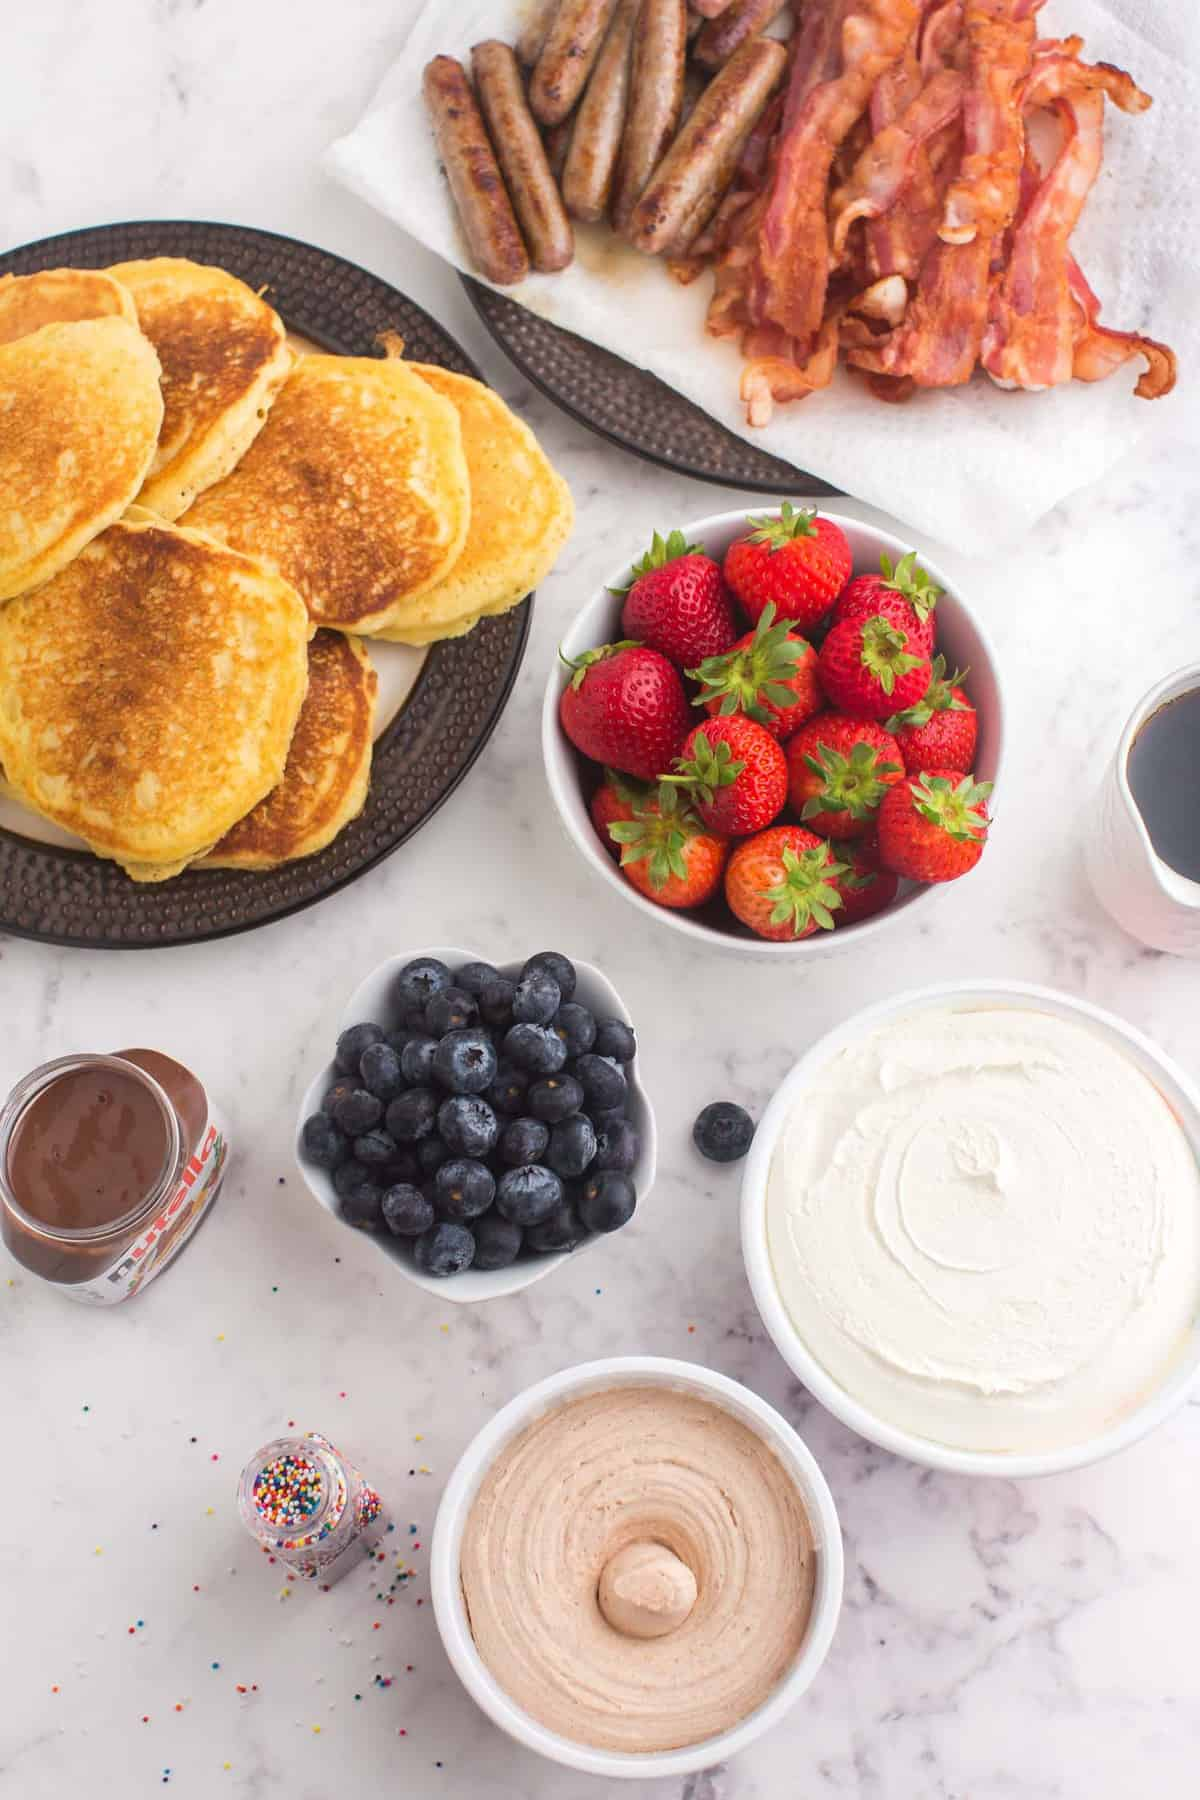 Ingredients in separate bowls and plates, pancakes, fruit, toppings, and breakfast meats.